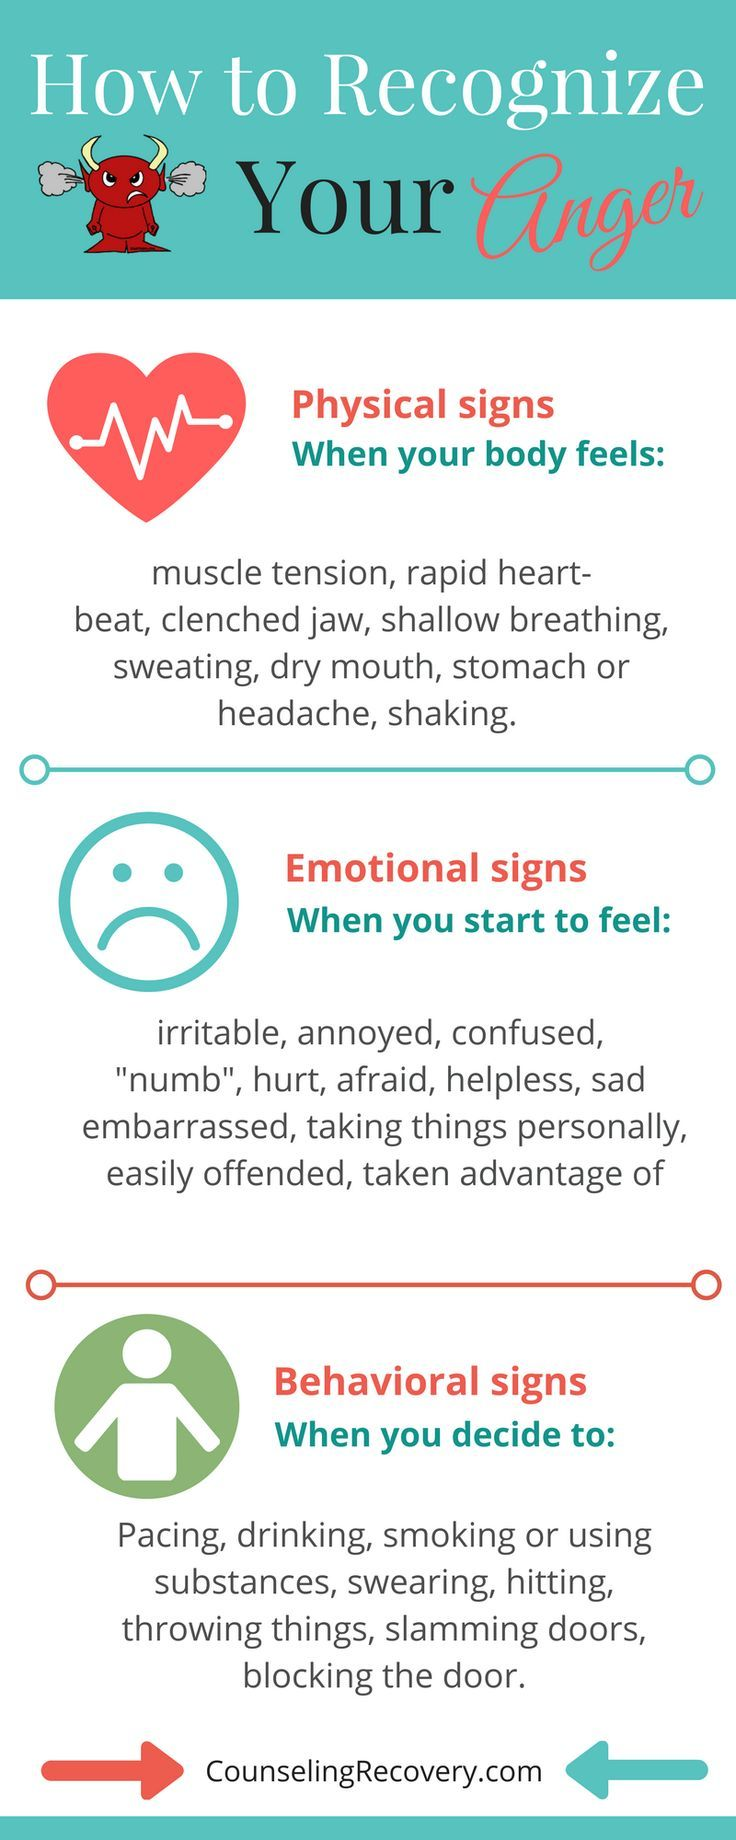 a35bda1c5f4ca54d195af838ff7745c9--anger-control-how-to-control-emotions Psychology Infographic : Knowing your early warning signs of anger can prevent heated arguments and poten...